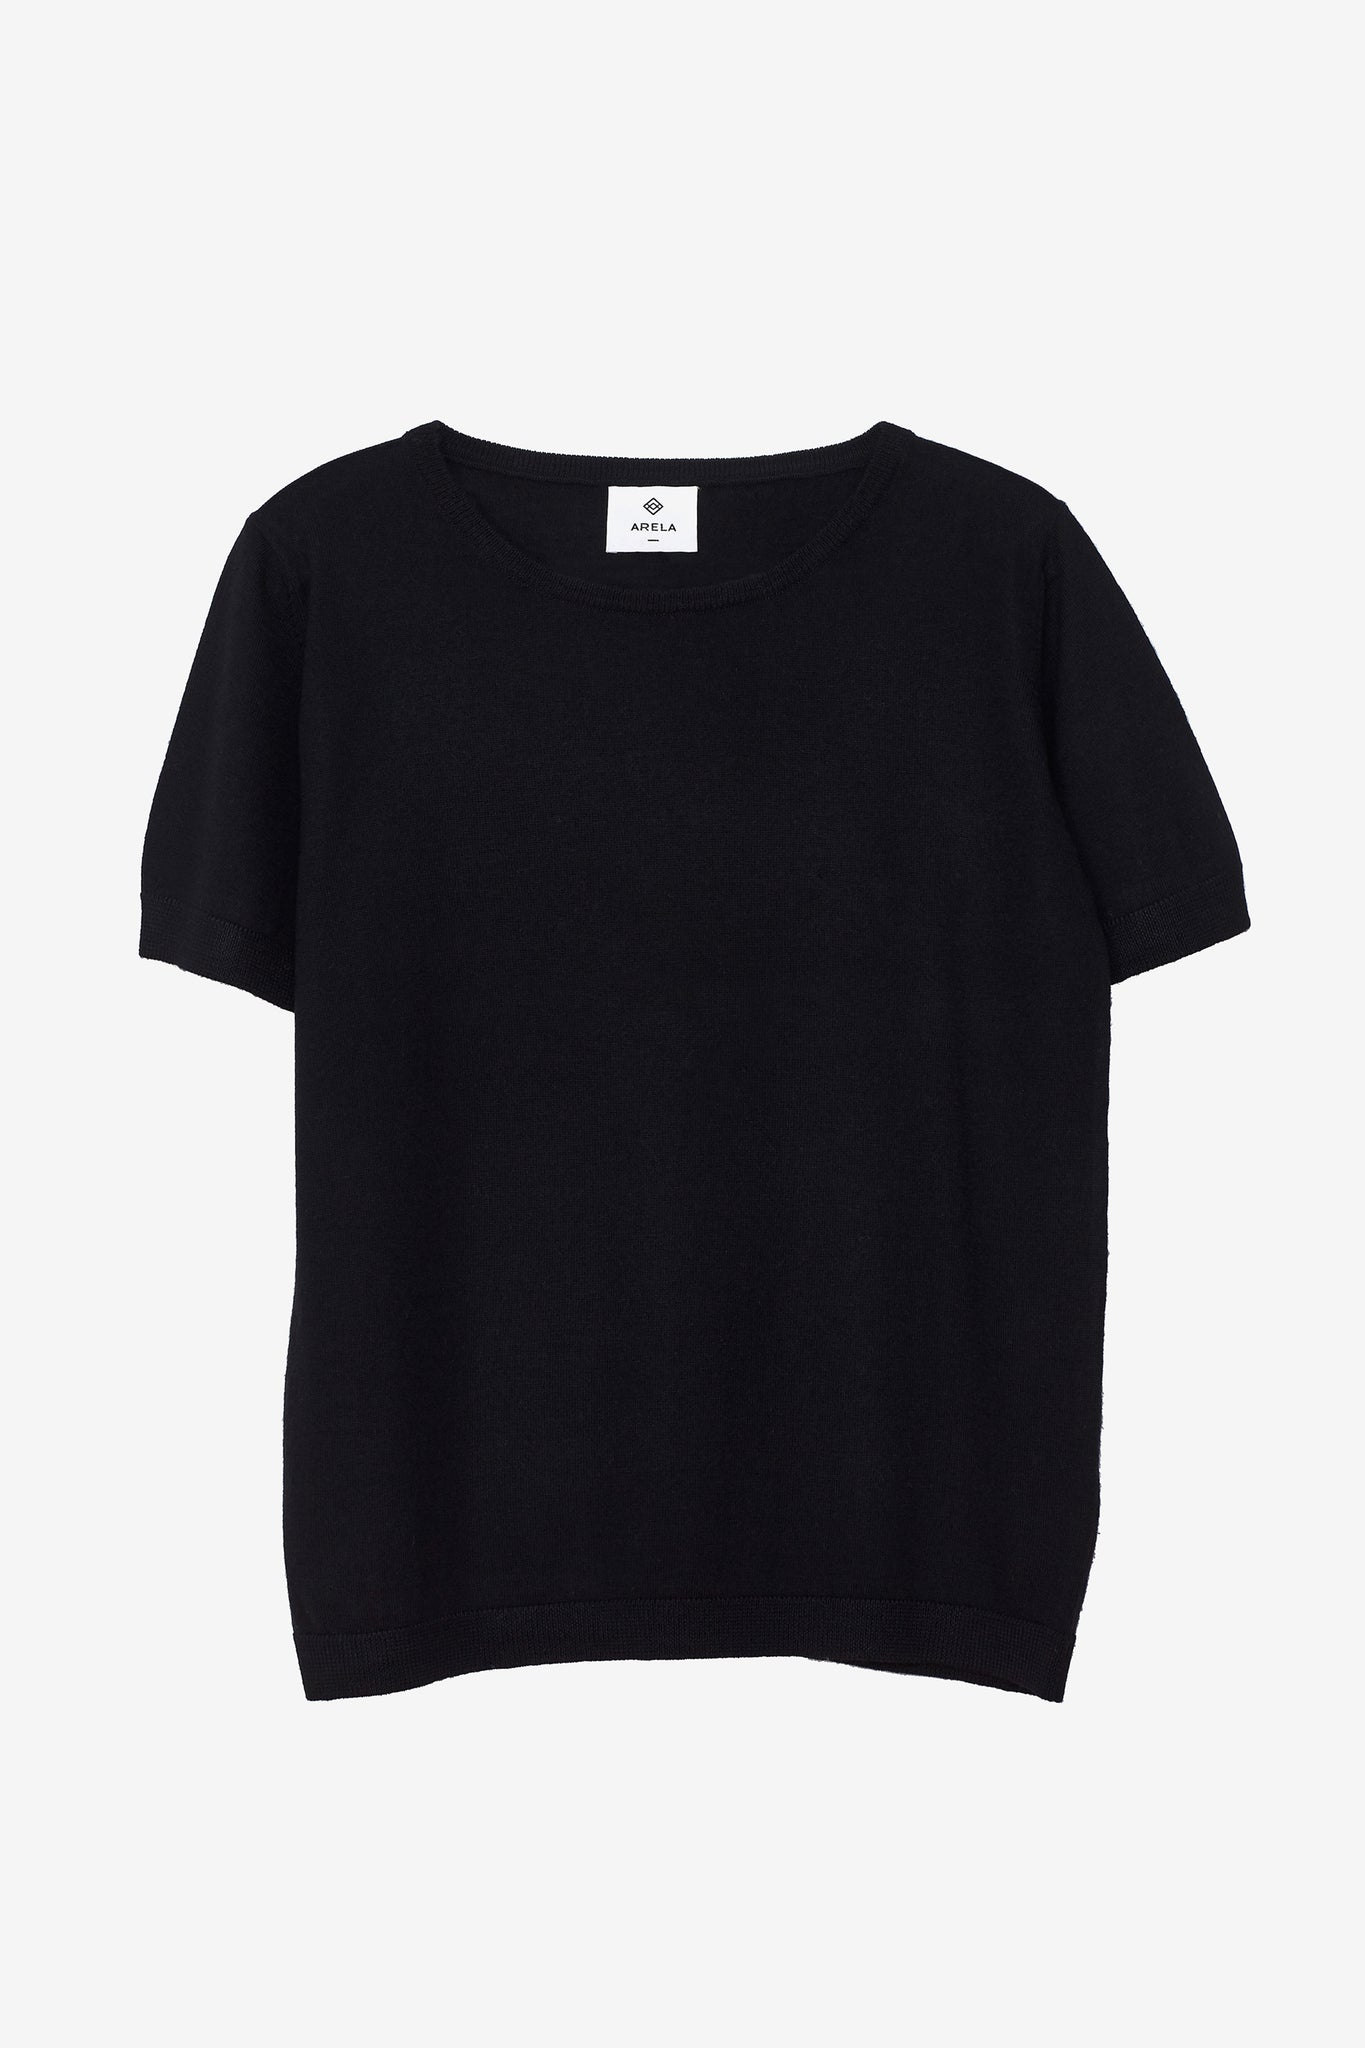 Knitted Kim t-shirt in black